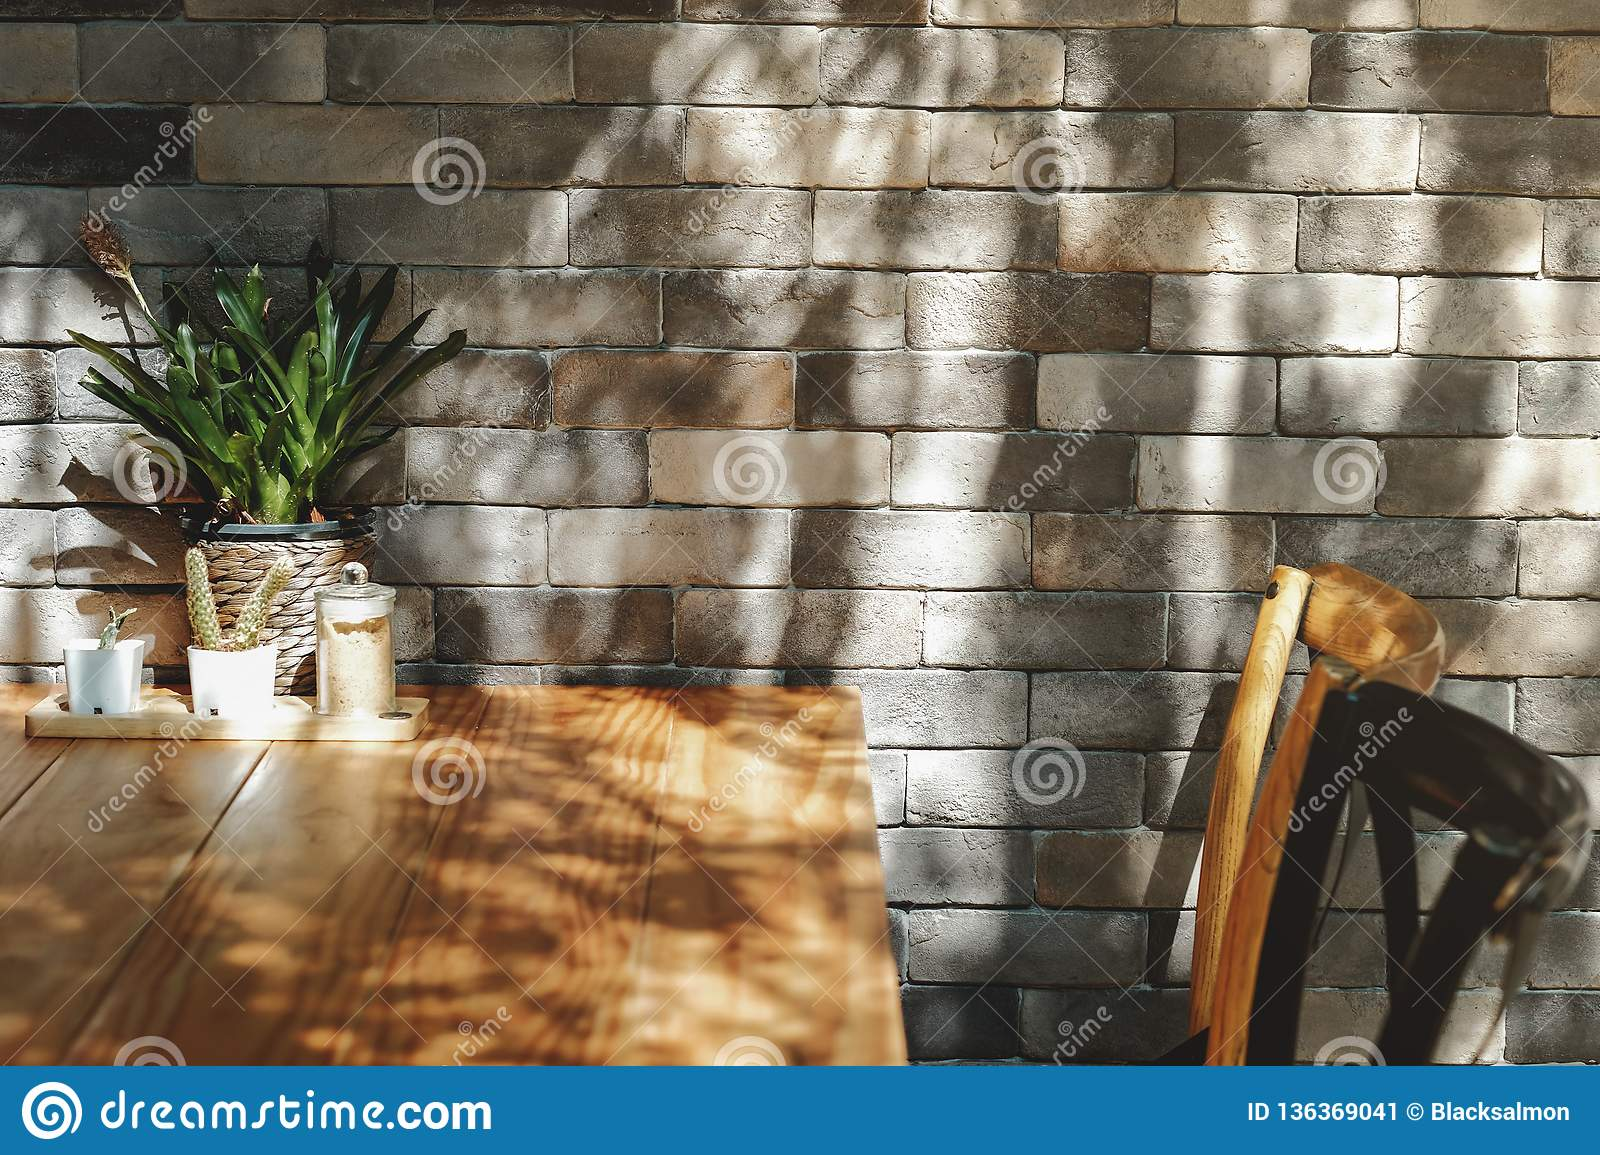 29 186 Design Restaurant Wall Photos Free Royalty Free Stock Photos From Dreamstime